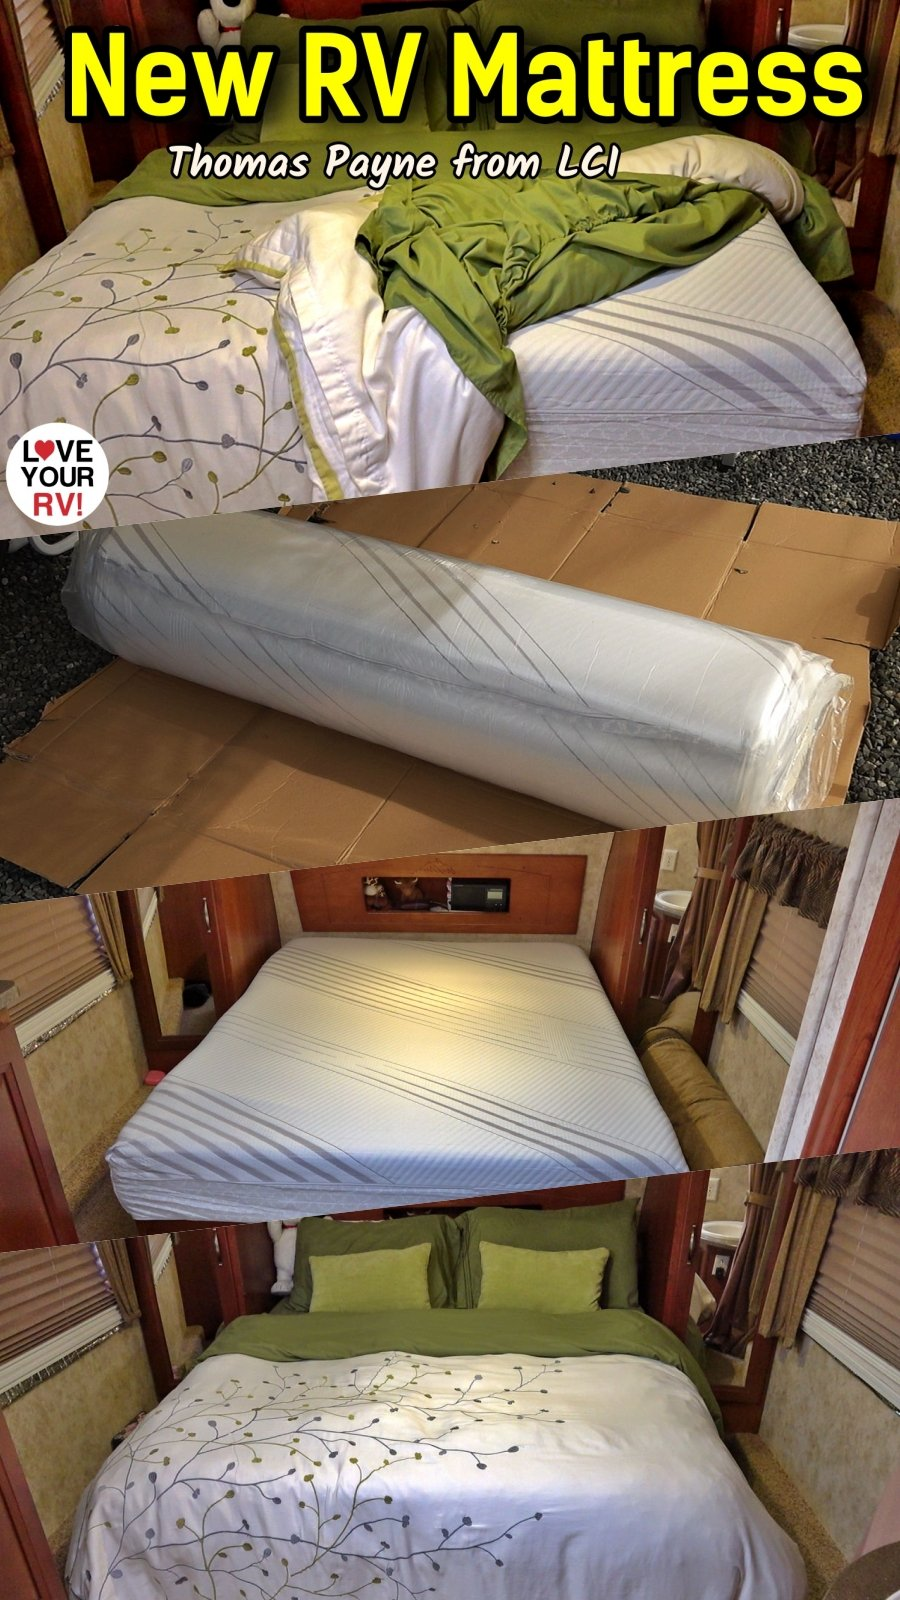 Review of the new Thomas Payne RV Foam Mattress from (LCI) Lippert Components Inc